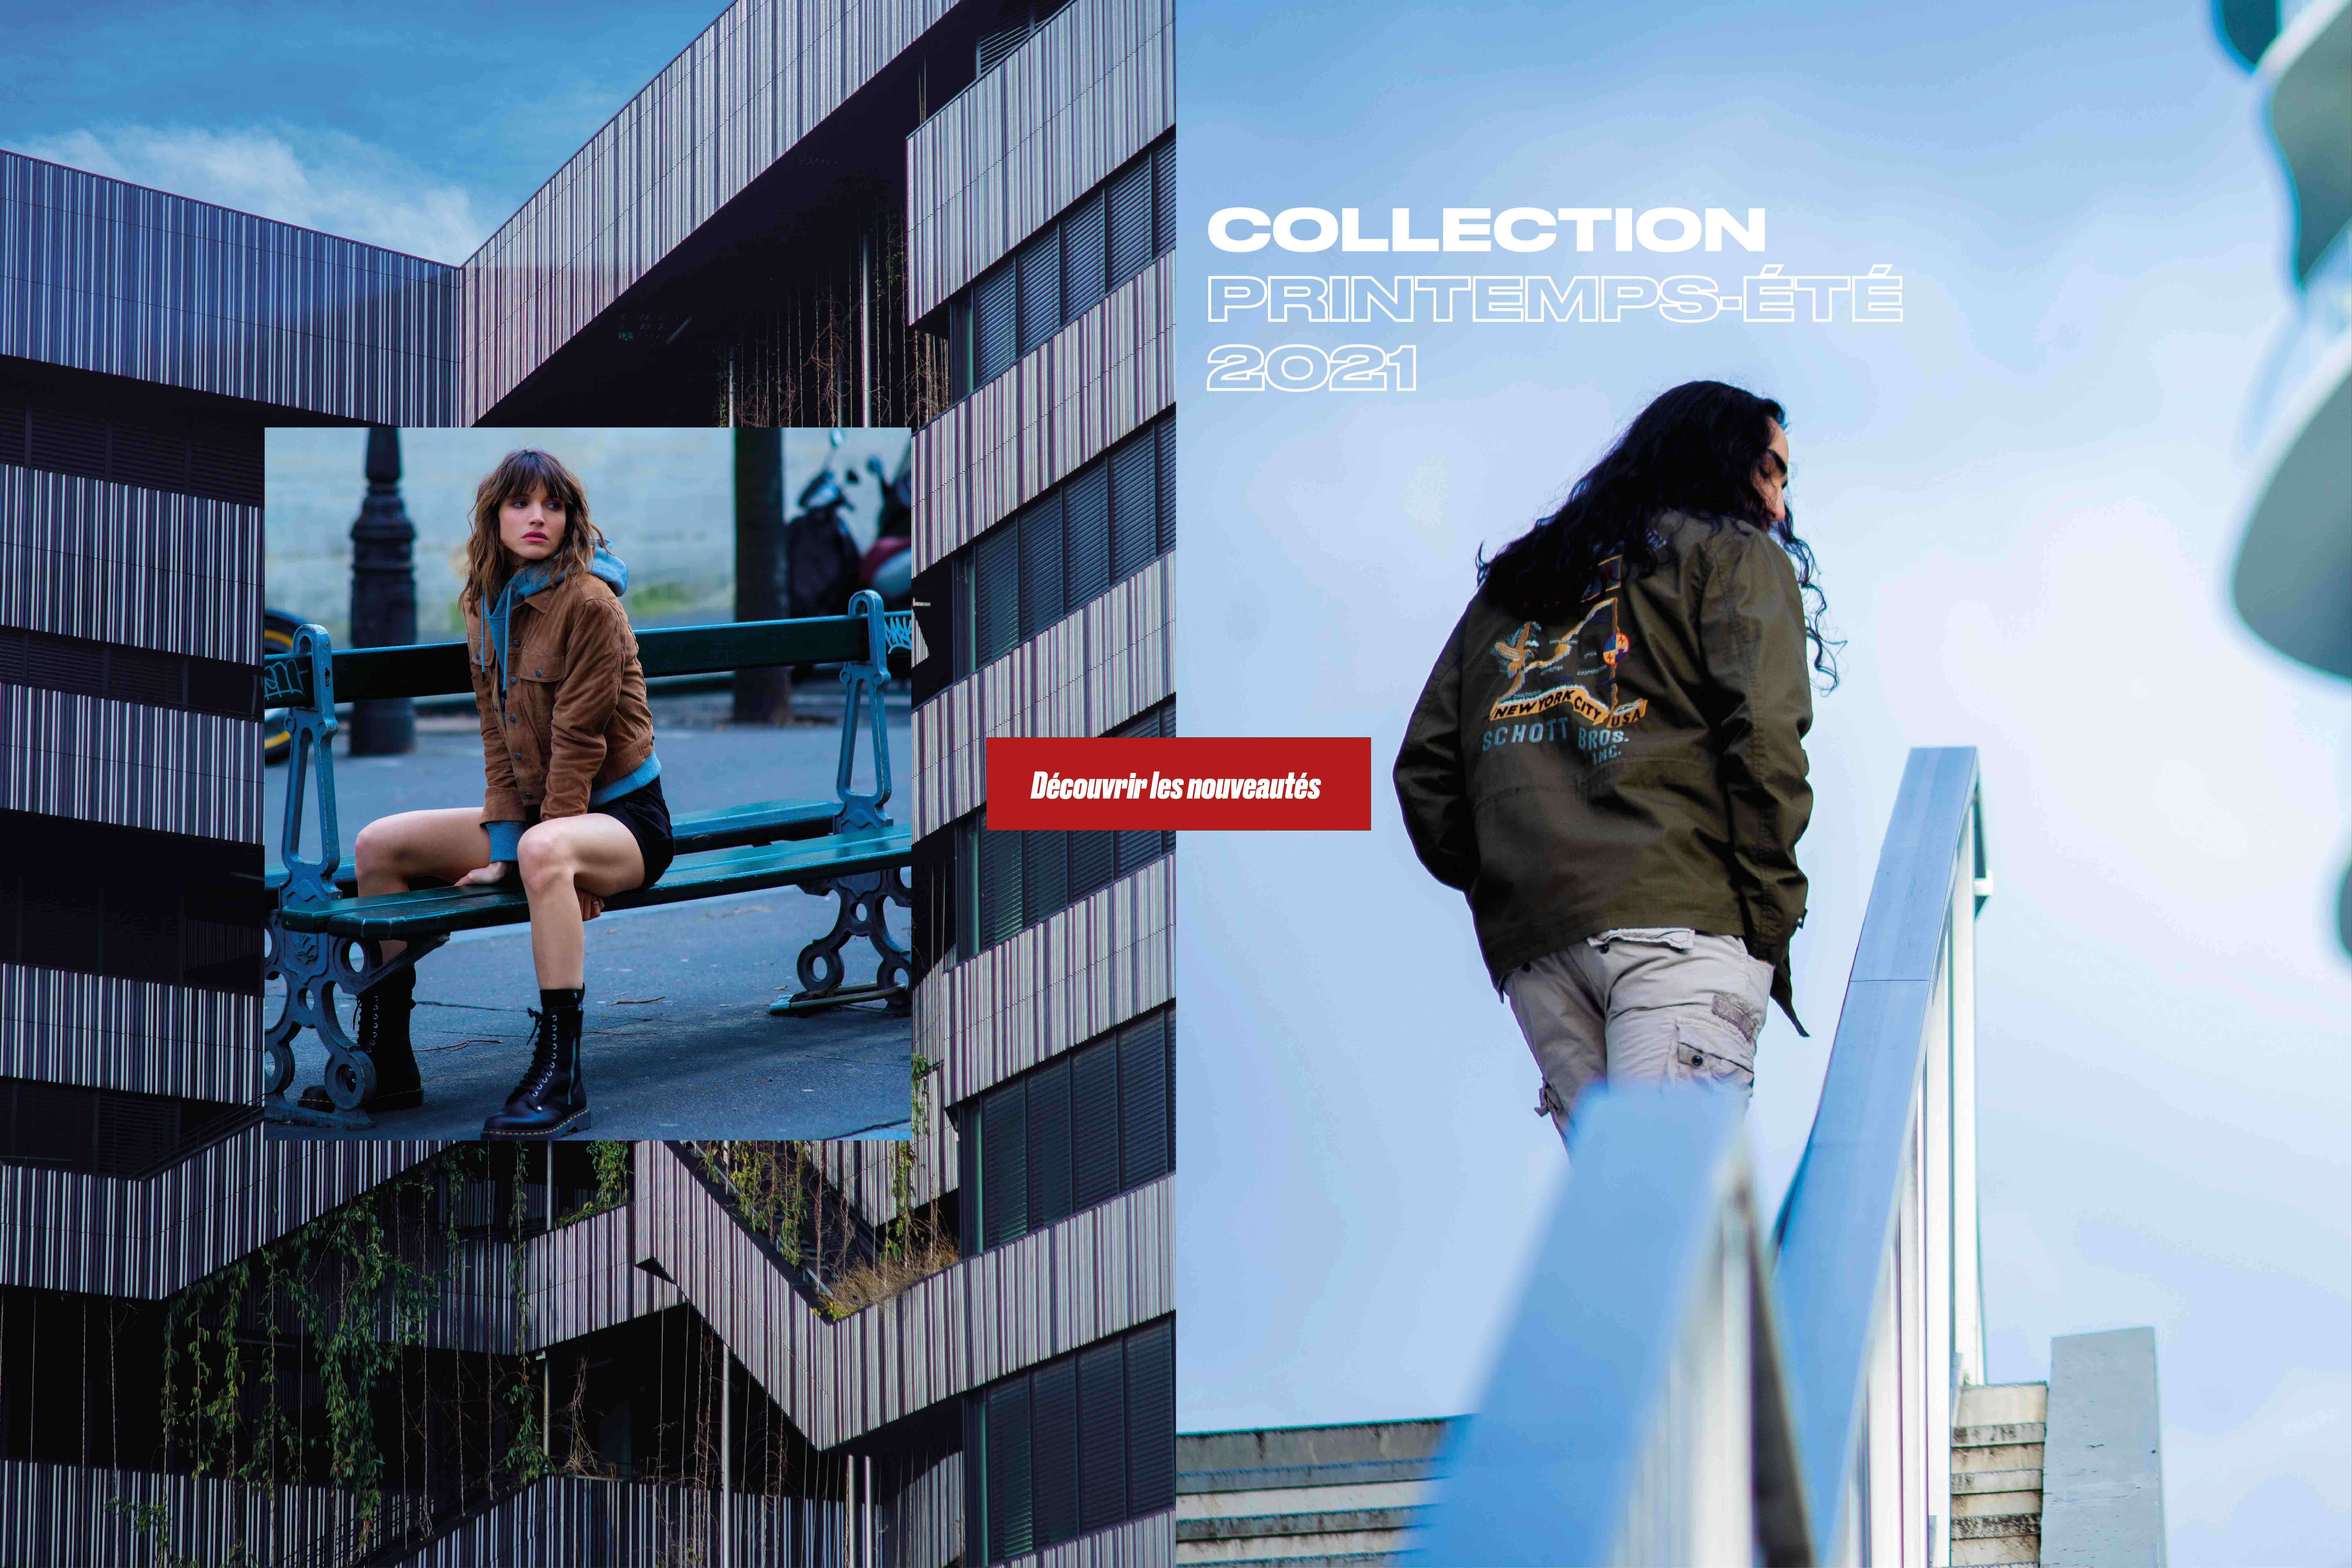 Slider 1 - Nouvelle collection